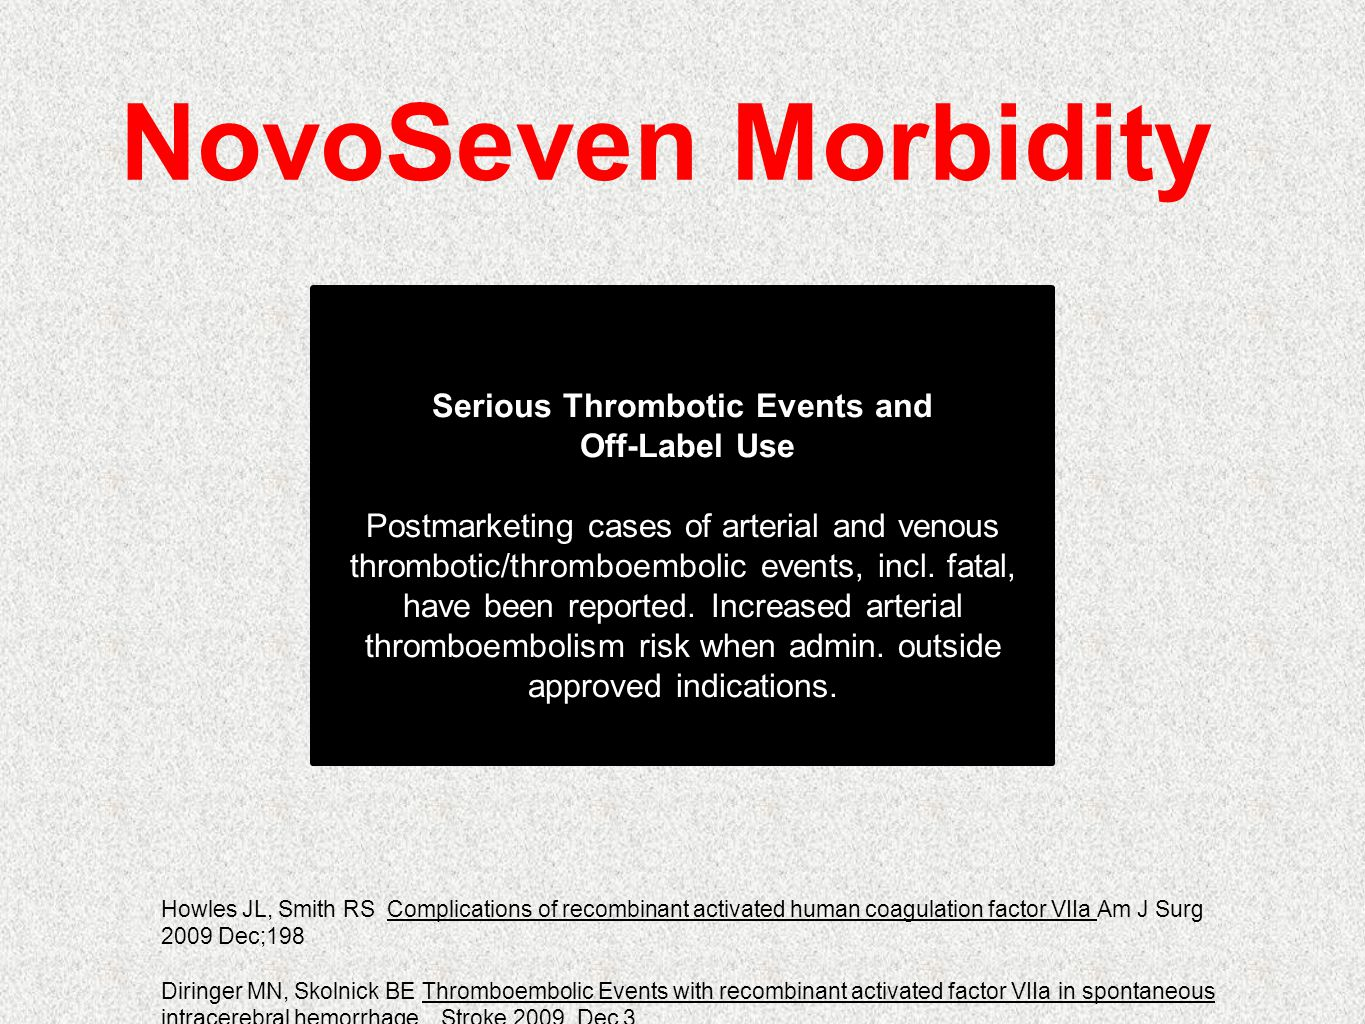 Serious Thrombotic Events and